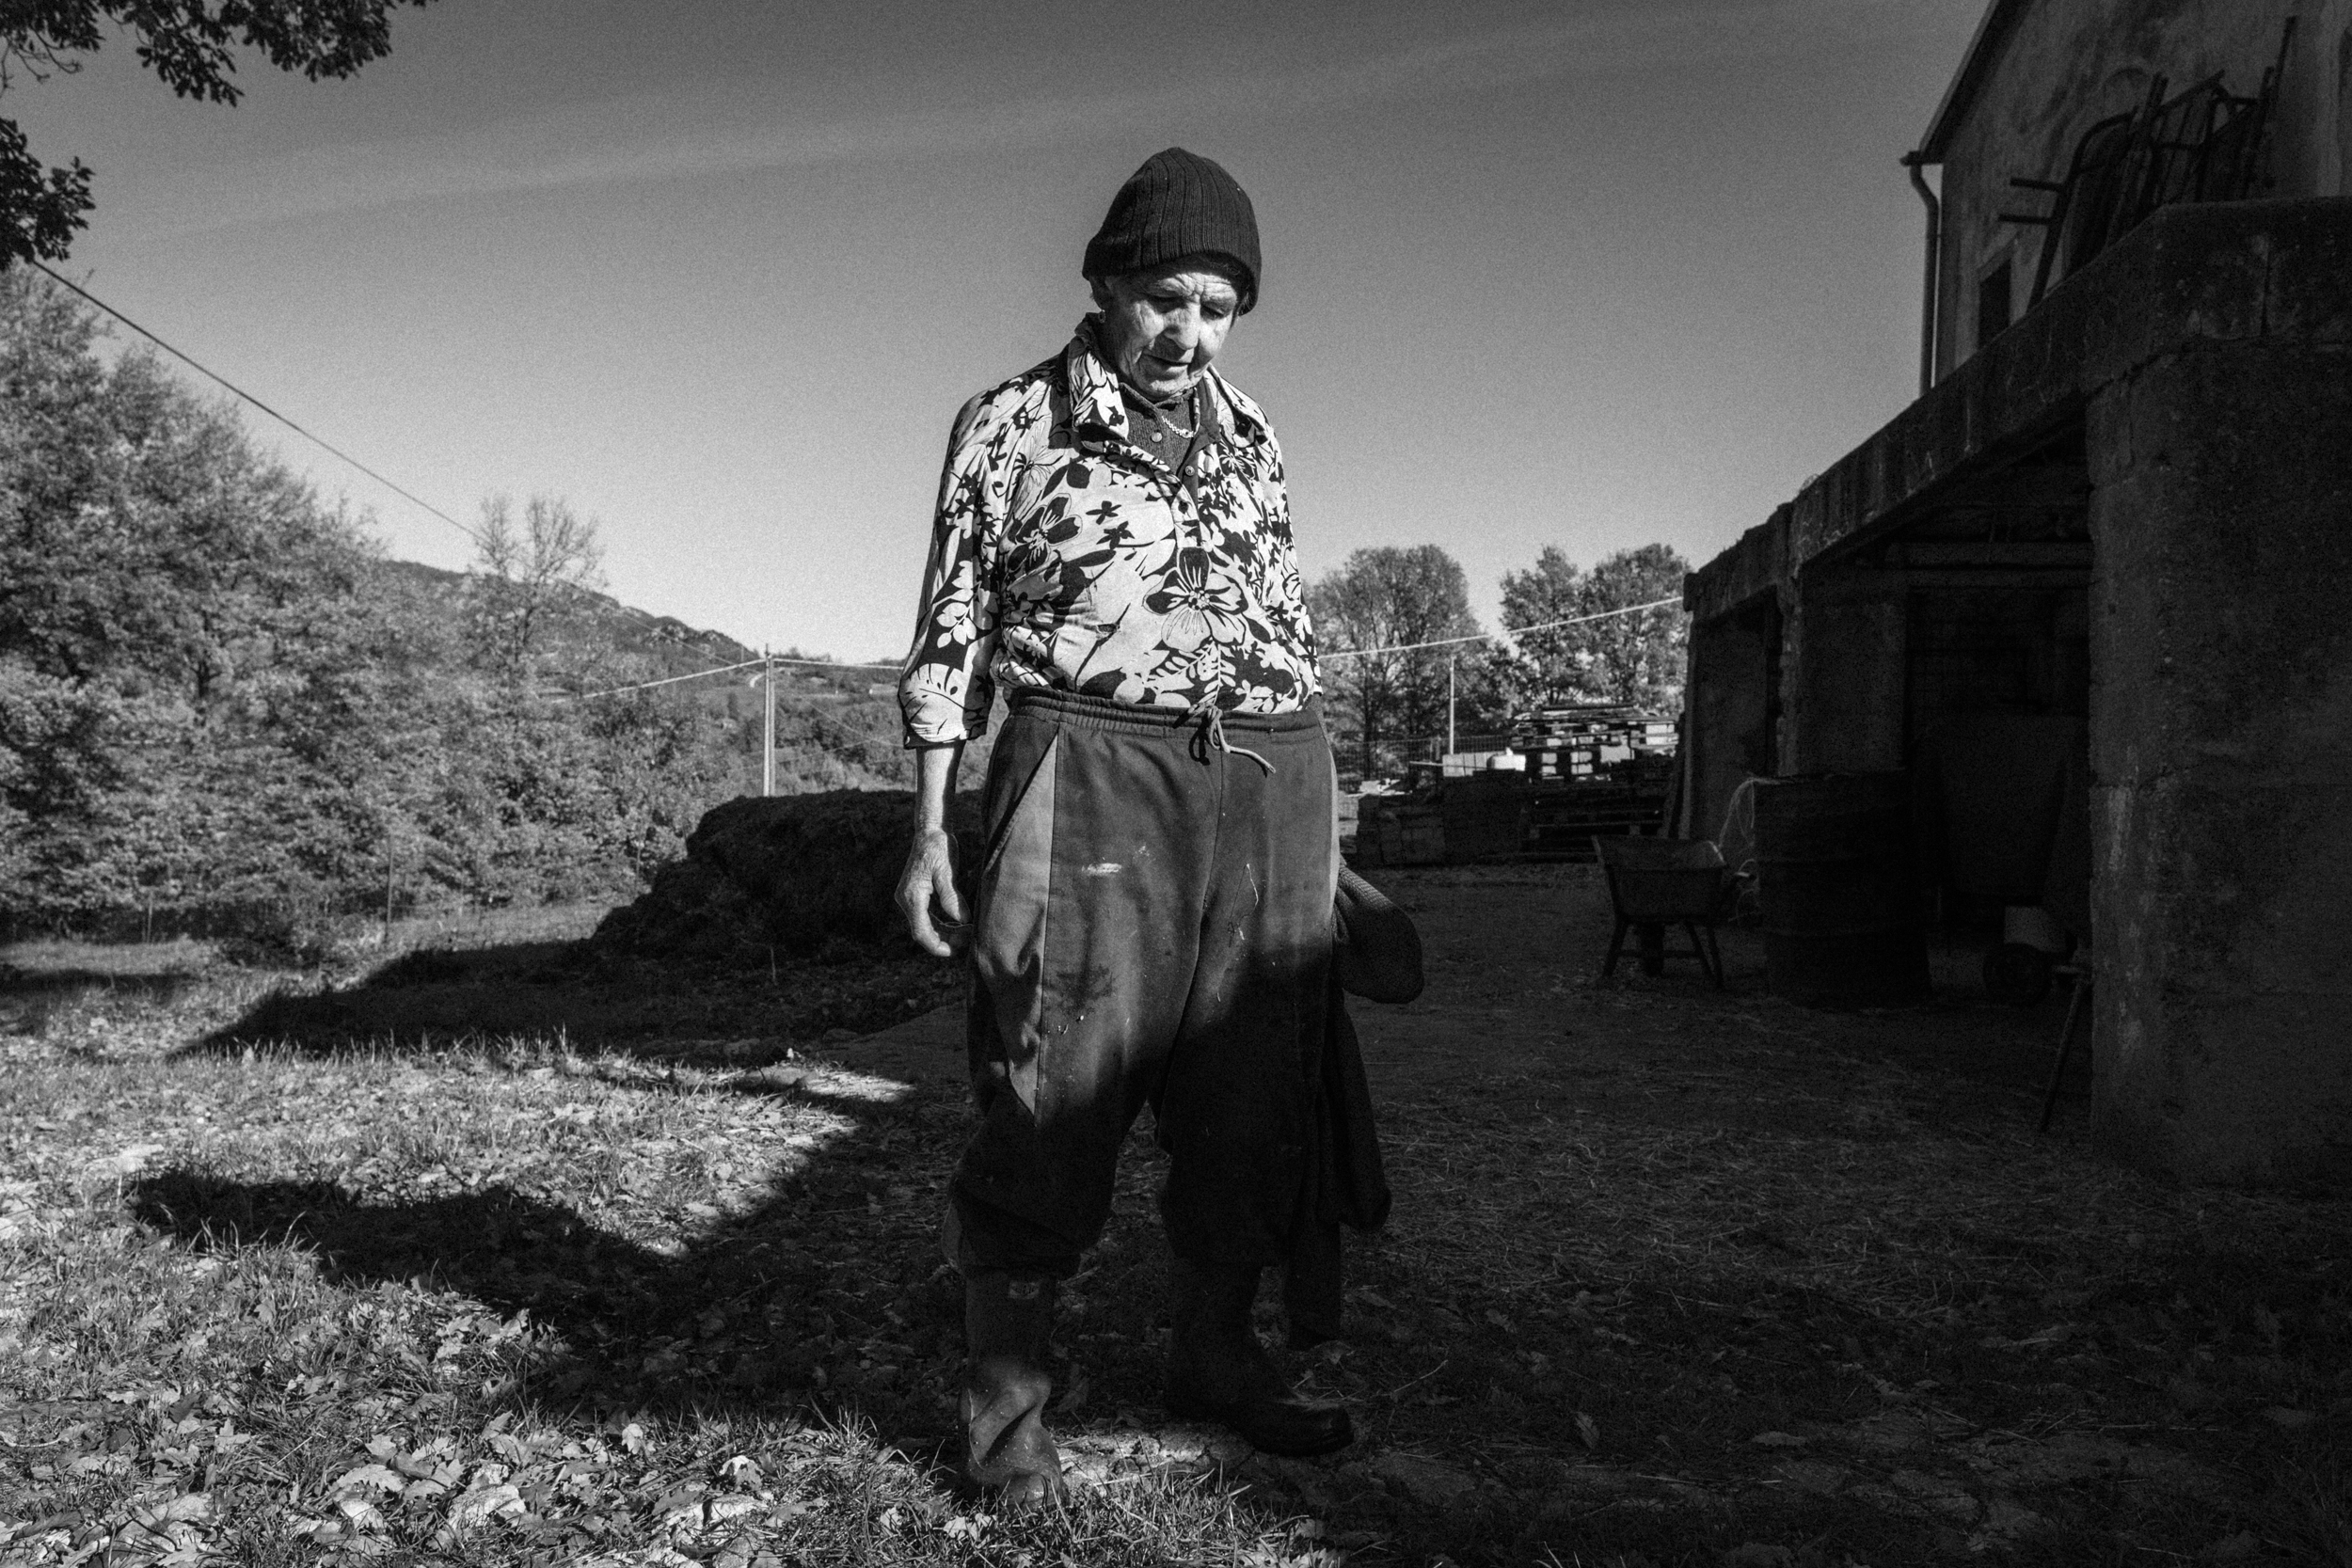 Sant'Angelo del Pesco (IS), Italy - November 2015. In a place called in the local dialect Nardon. Nunziella Casciato at the end of her daily activities related to livestock farming.